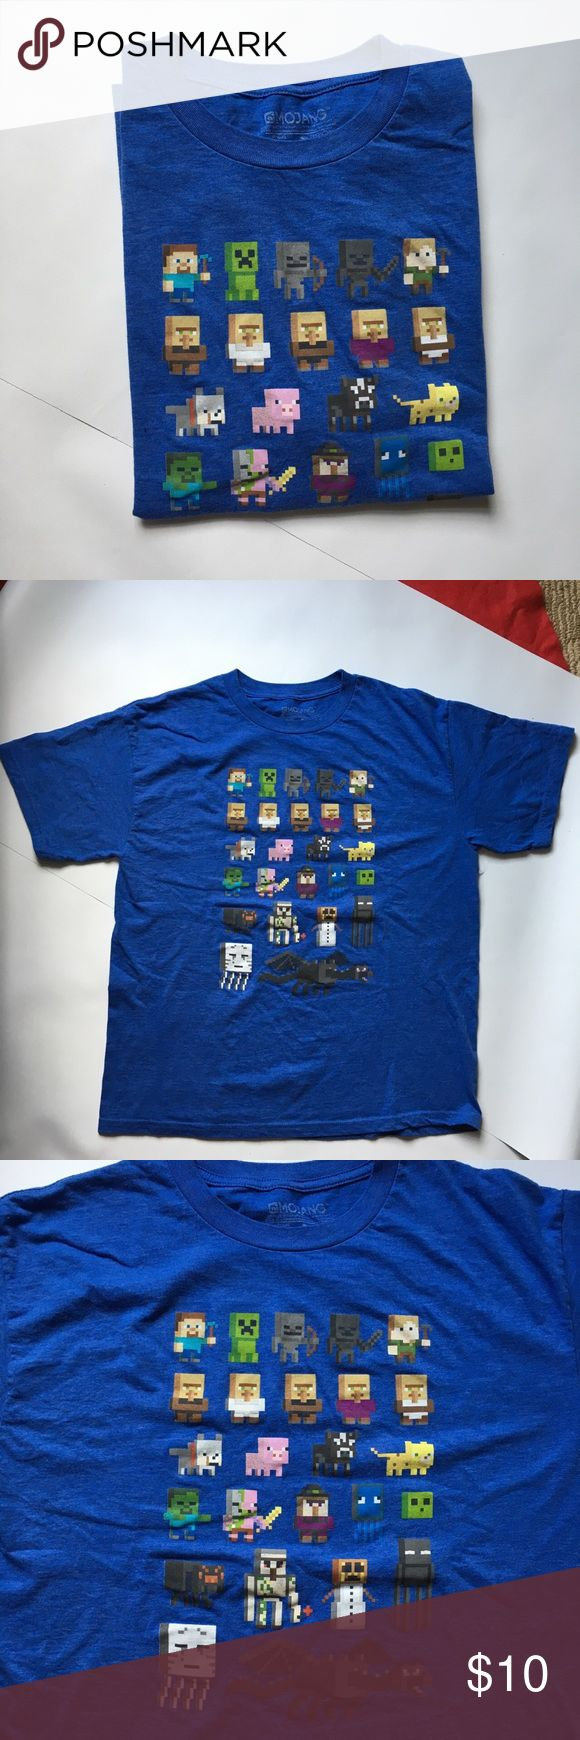 "Mojang Minecraft T-Shirt Size 2X (18) Blue Cotton Mojang Minecraft Boy's Short Sleeve Shirt Size 2X (18) Blue Cotton JINX -----MOJANG MINECRAFT  DESIGN BY JINX  Size: 2X (18) Color: Blue  Measurements Laying Flat: Approx. Full Chest: Armpit to Armpit: 20"" Length: Shoulder to Hem: 25"" Armpit to Hem: 14.5""   Sleeve Opening: 8"" Sleeve Across: 9"" Sleeve Length: 8.5"" Shirts Tees - Short Sleeve"